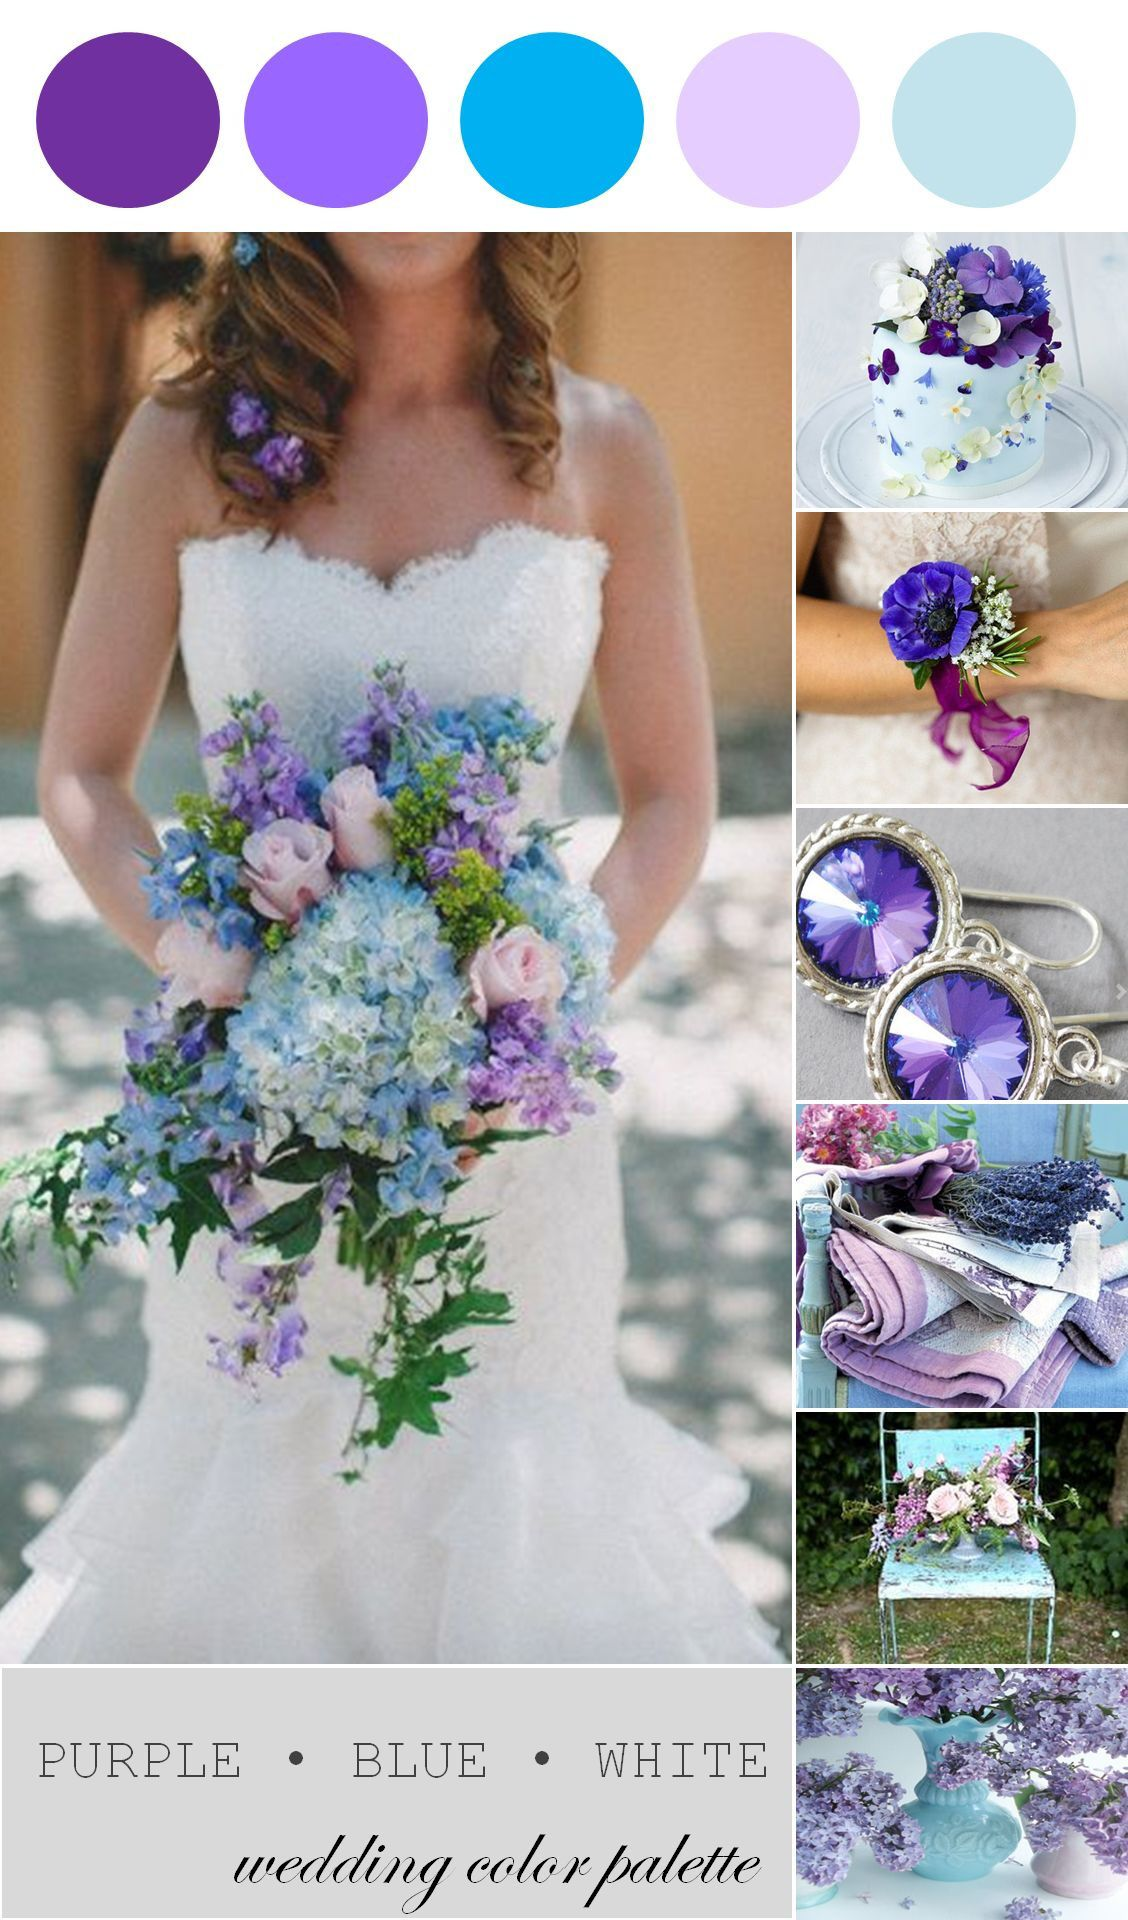 Just Some Examples Of Different Shades Purple And Blue For Your Wedding